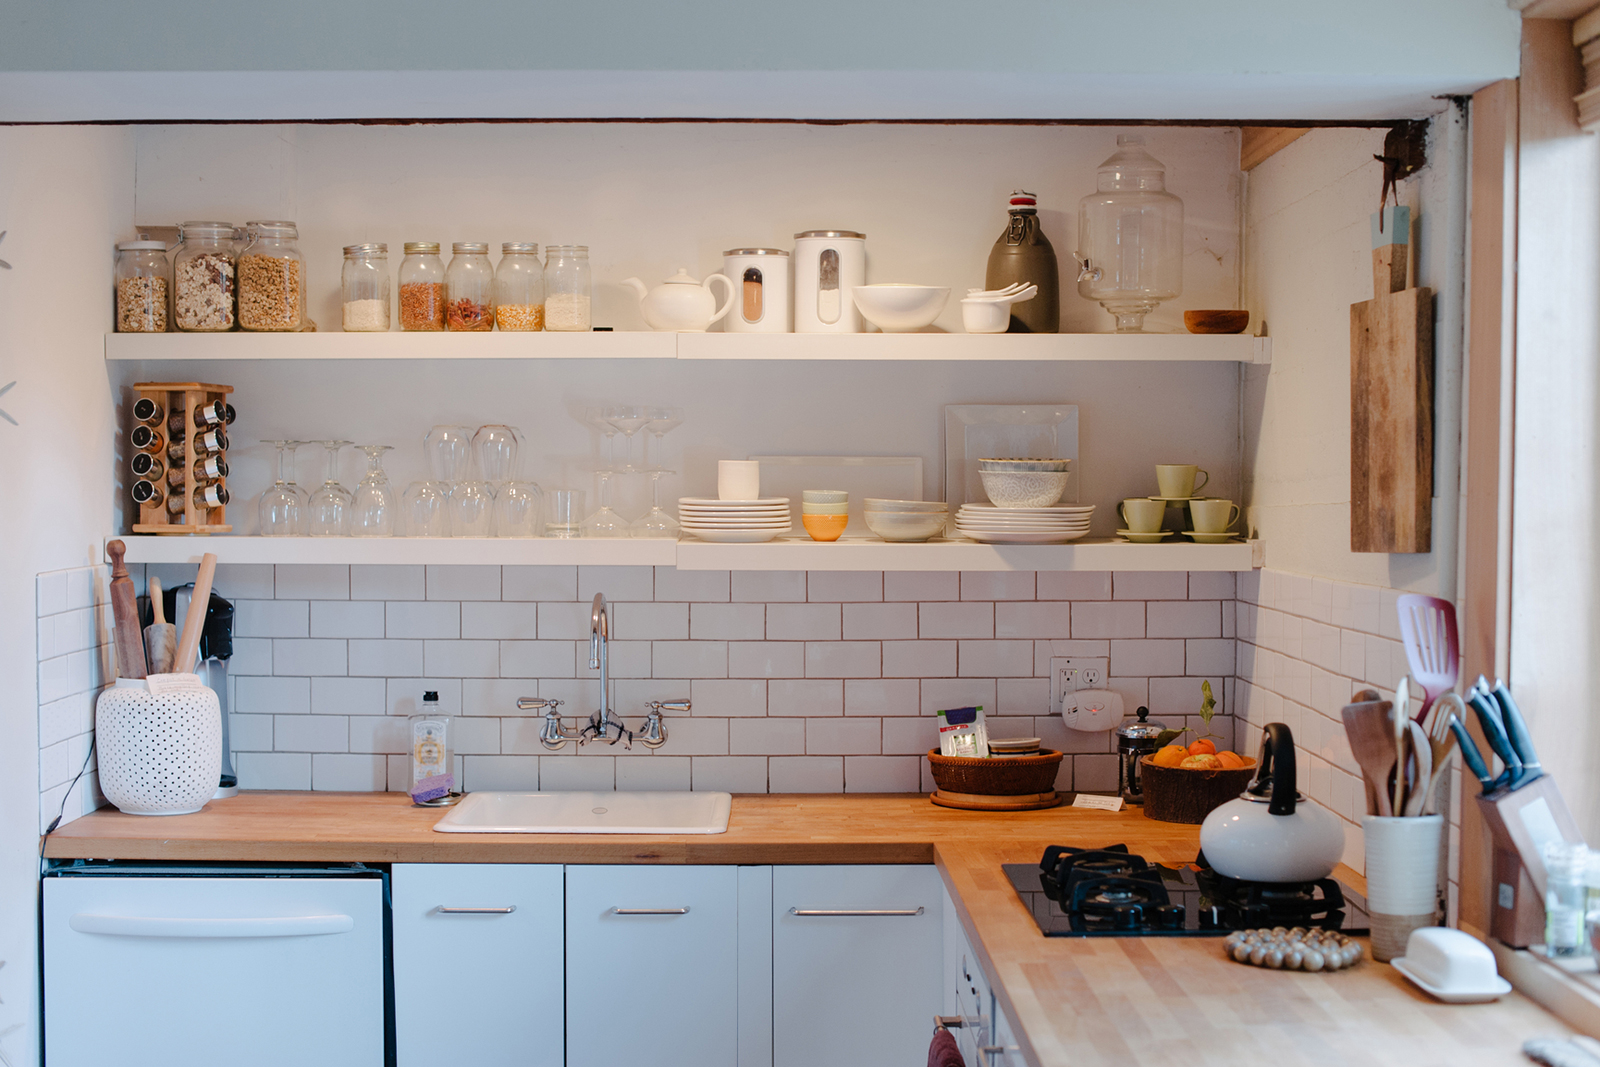 The Benefits Of Open Shelving In The Kitchen: How To Design A Kitchen